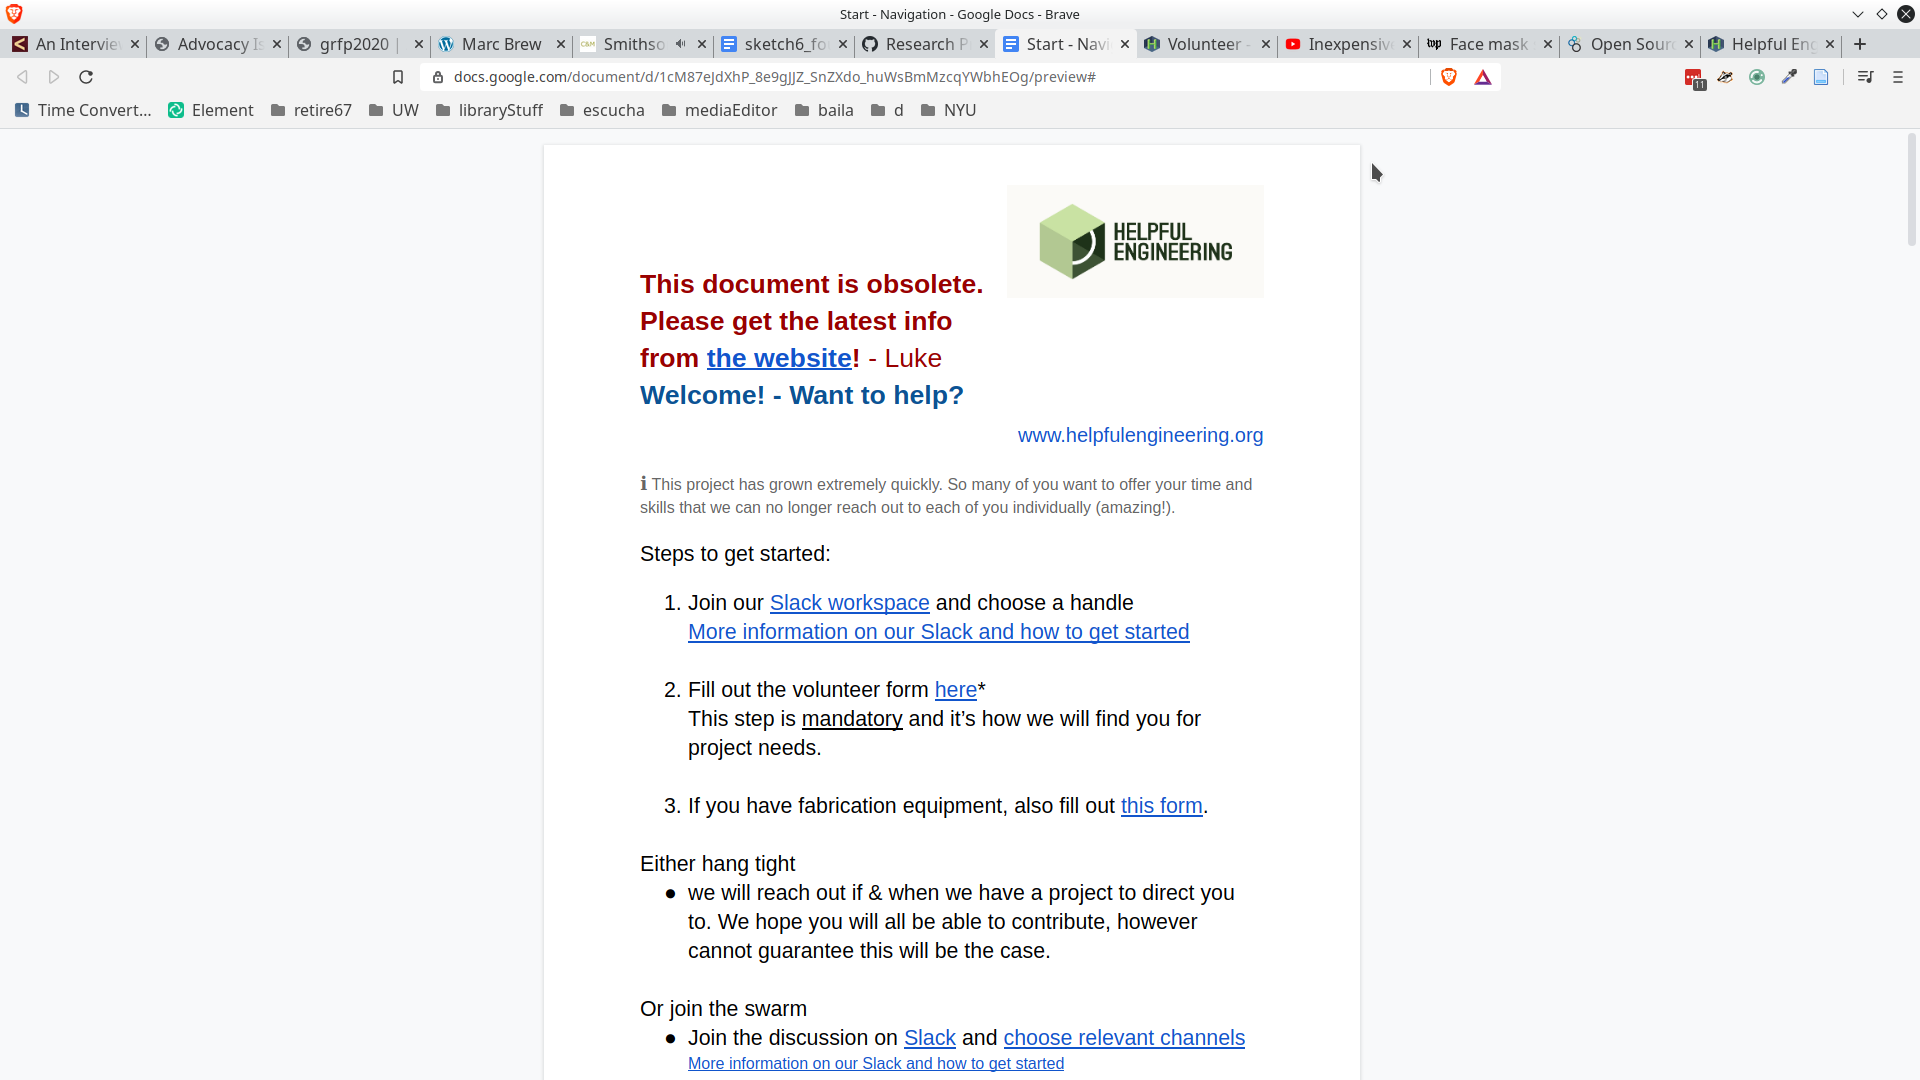 screenshot of a google doc that was the first draft of Helpful Engineers collaborative documentation